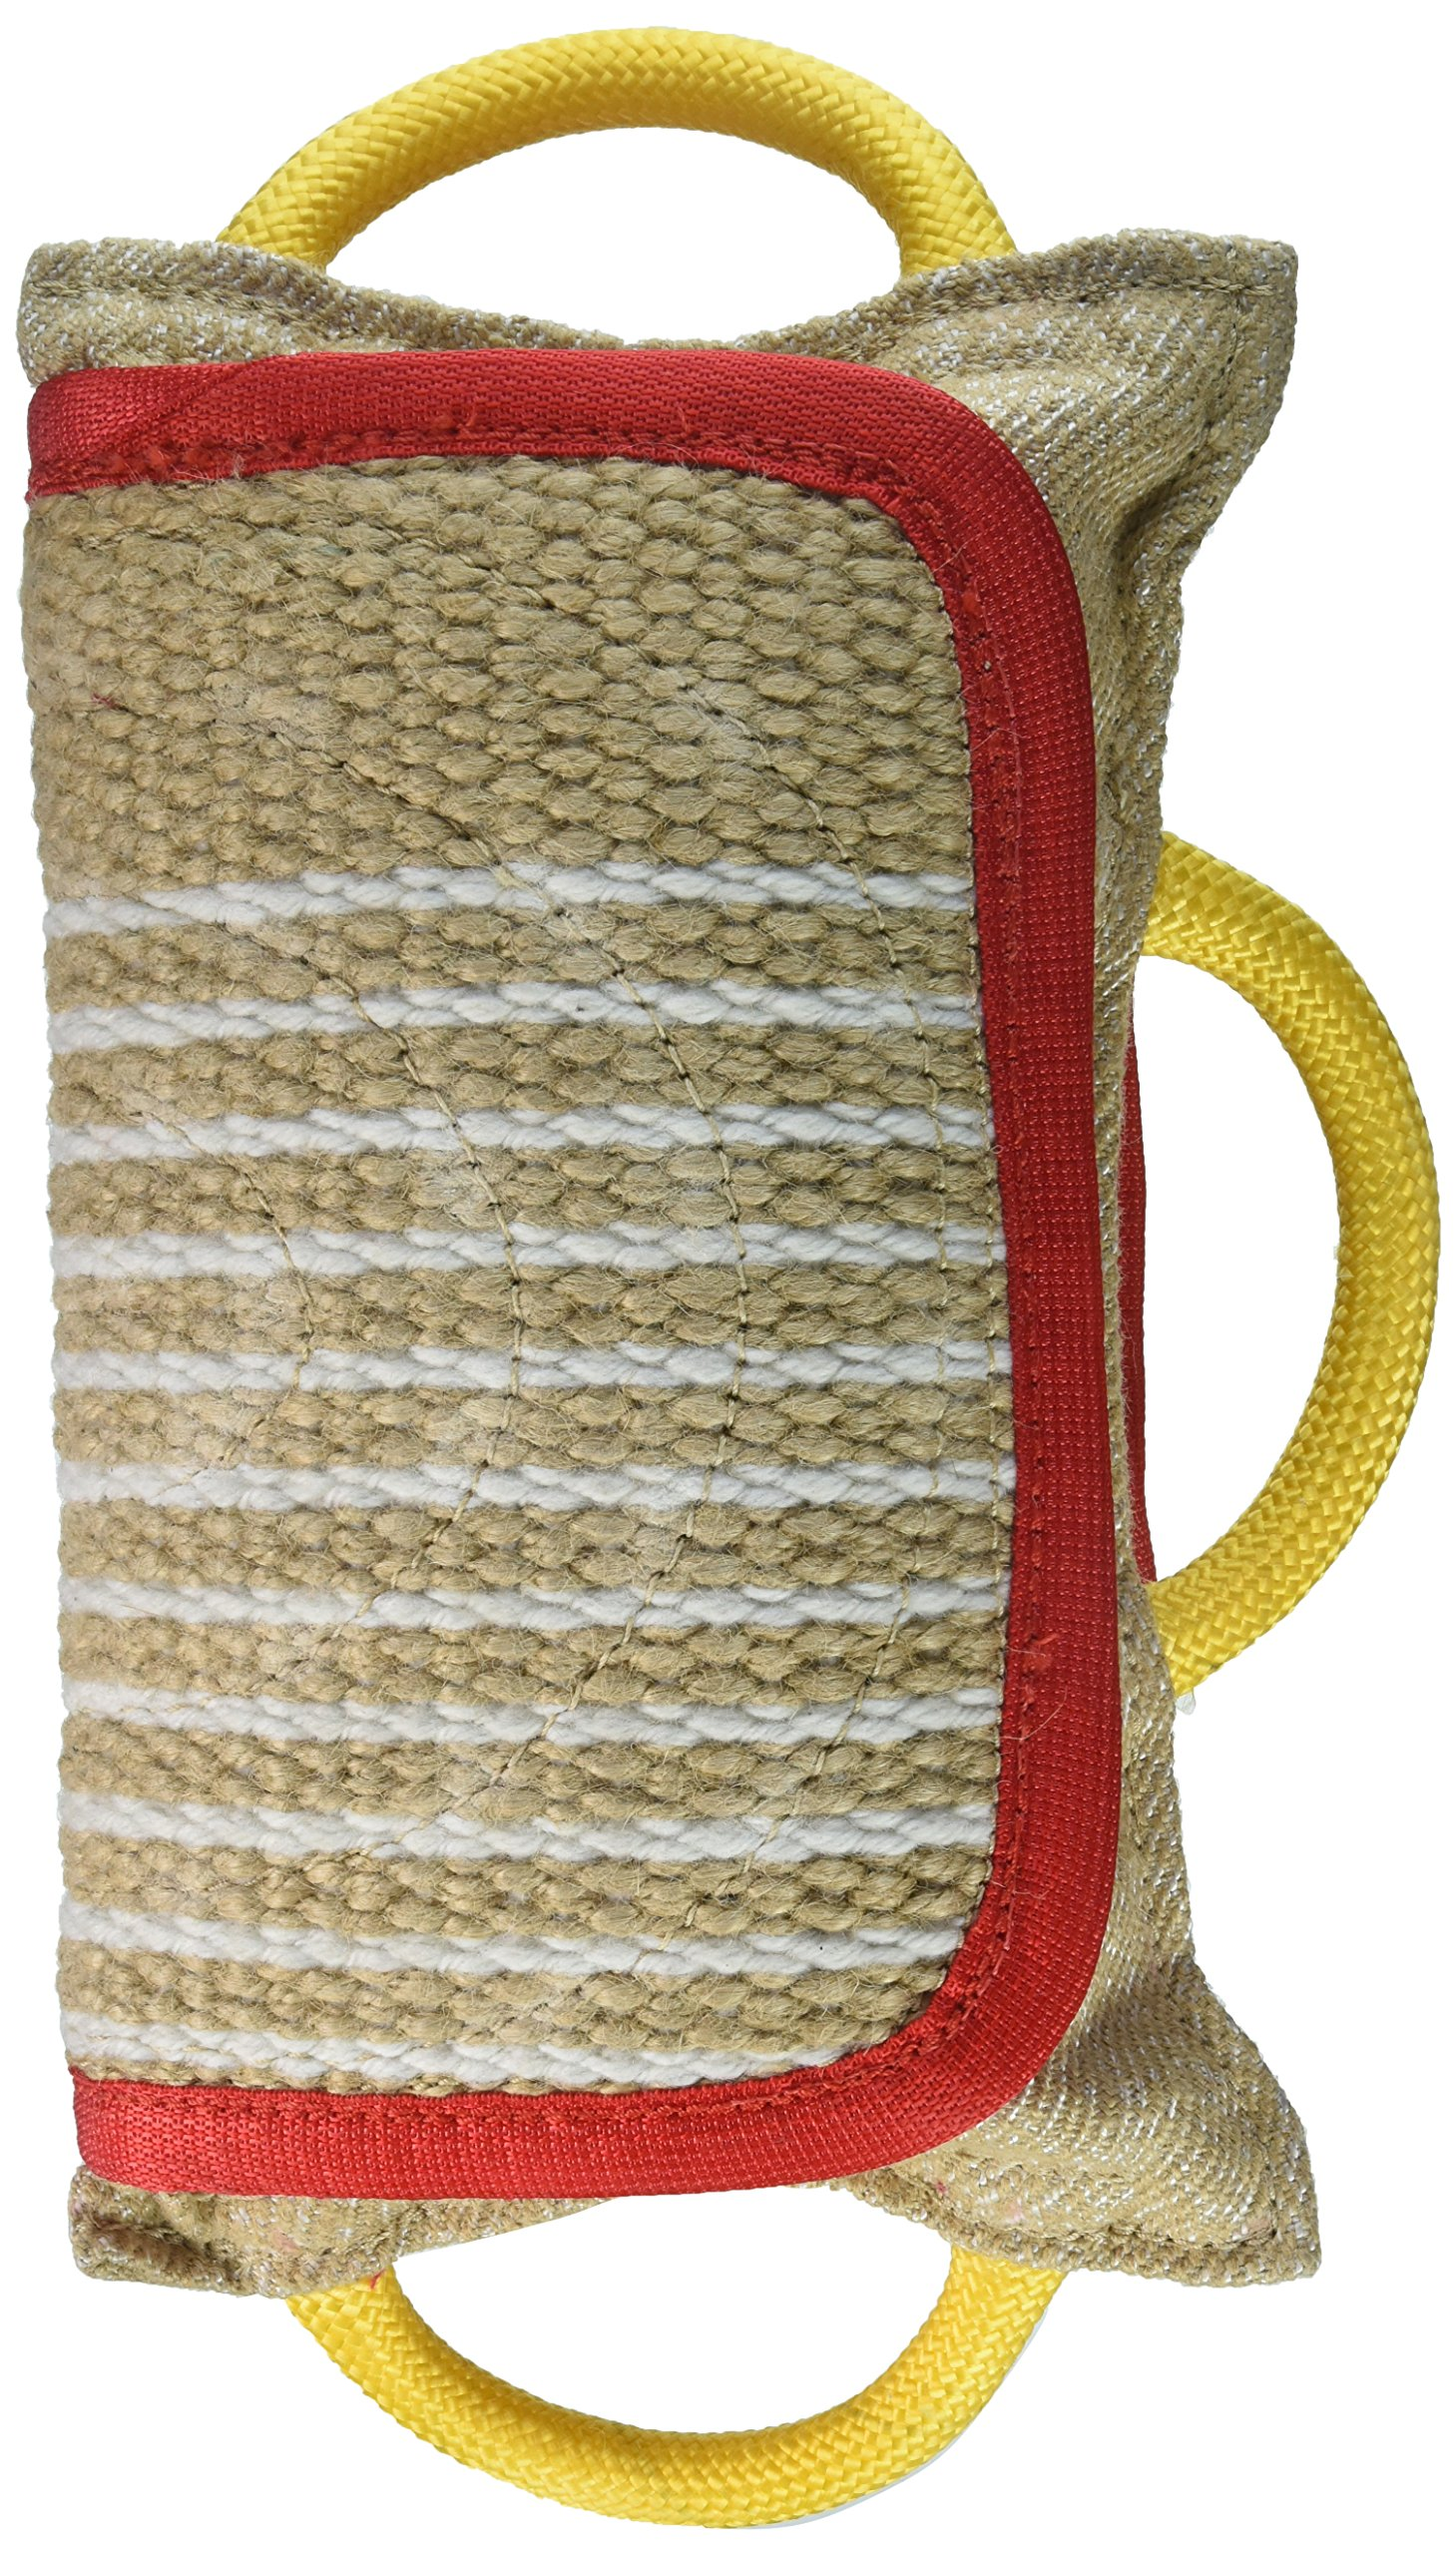 Dean & Tyler Pro Bite Natural Color Jute, Extra Wide Pad Collar, 14.5 by 10.5-Inch